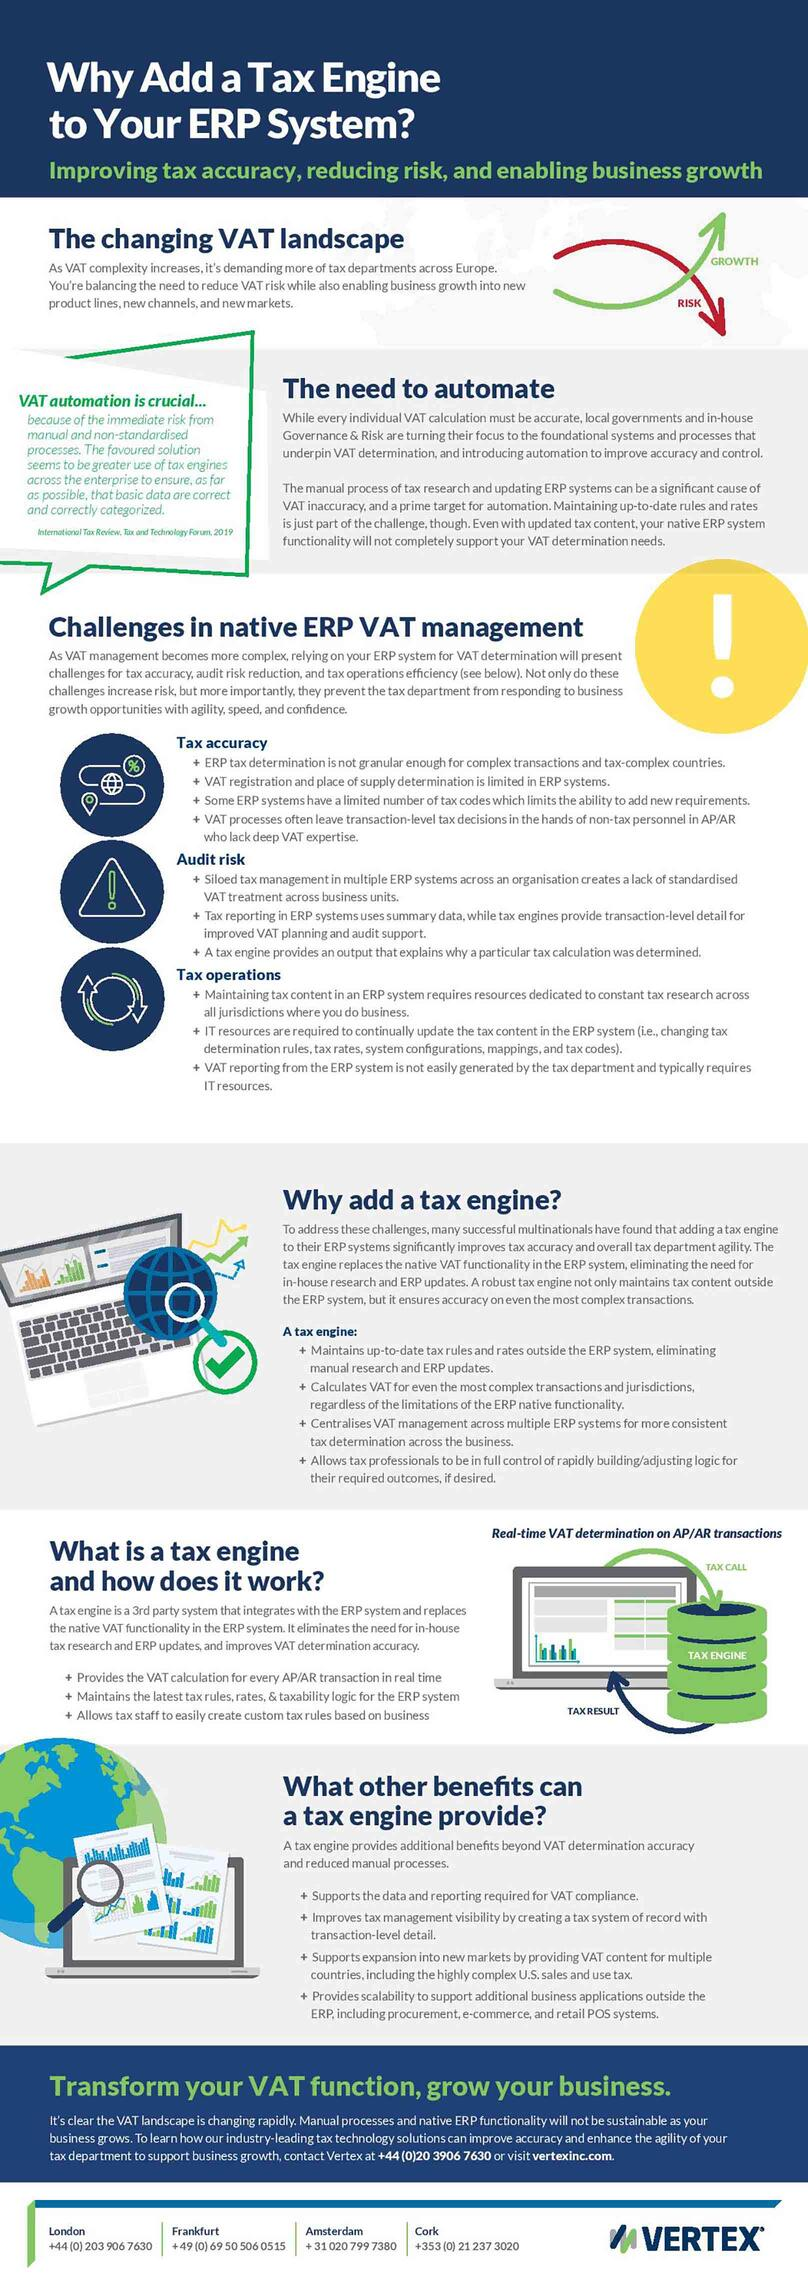 An infographic outlining reasons to add a tax engine to your ERP system.